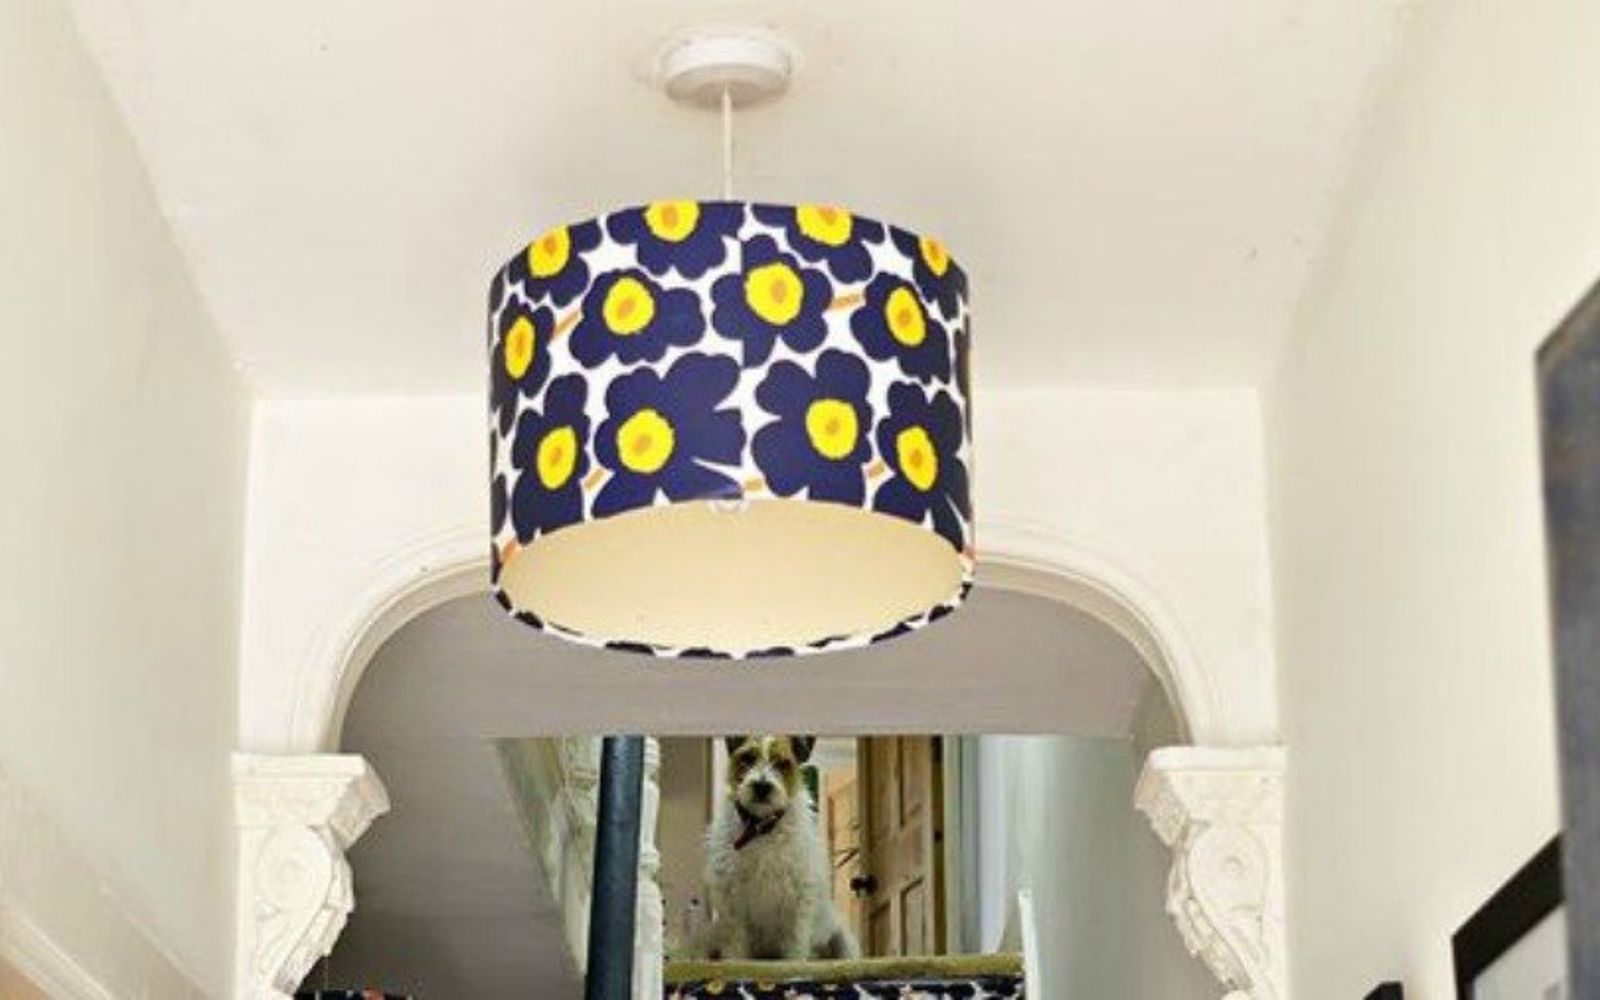 s 20 ways you never thought of using wallpaper, wall decor, Upcycle an old lampshade